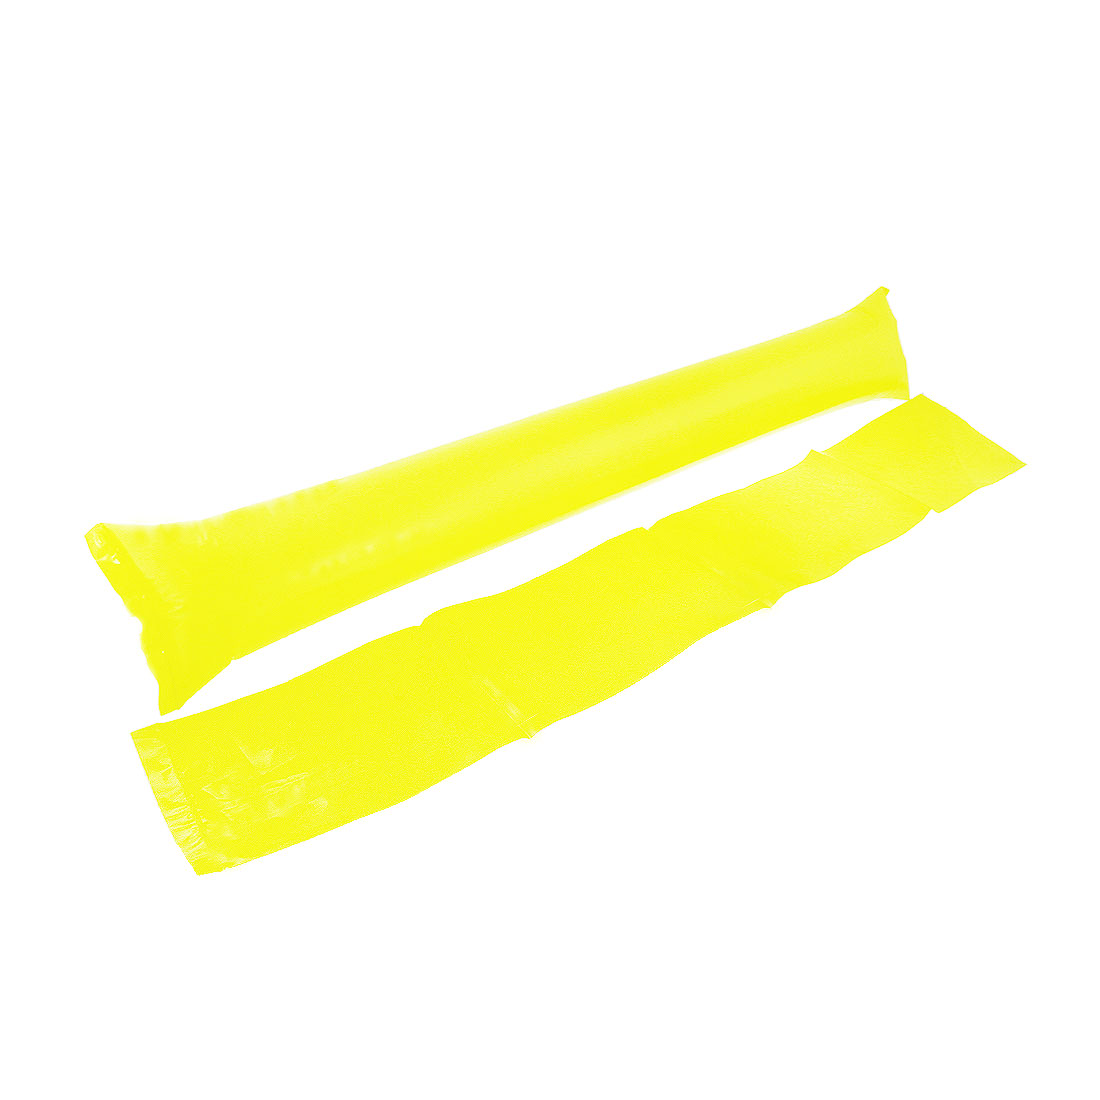 5 Pairs Plastic Inflatable Match Cheer Balloons Bang Bar Stick Yellow